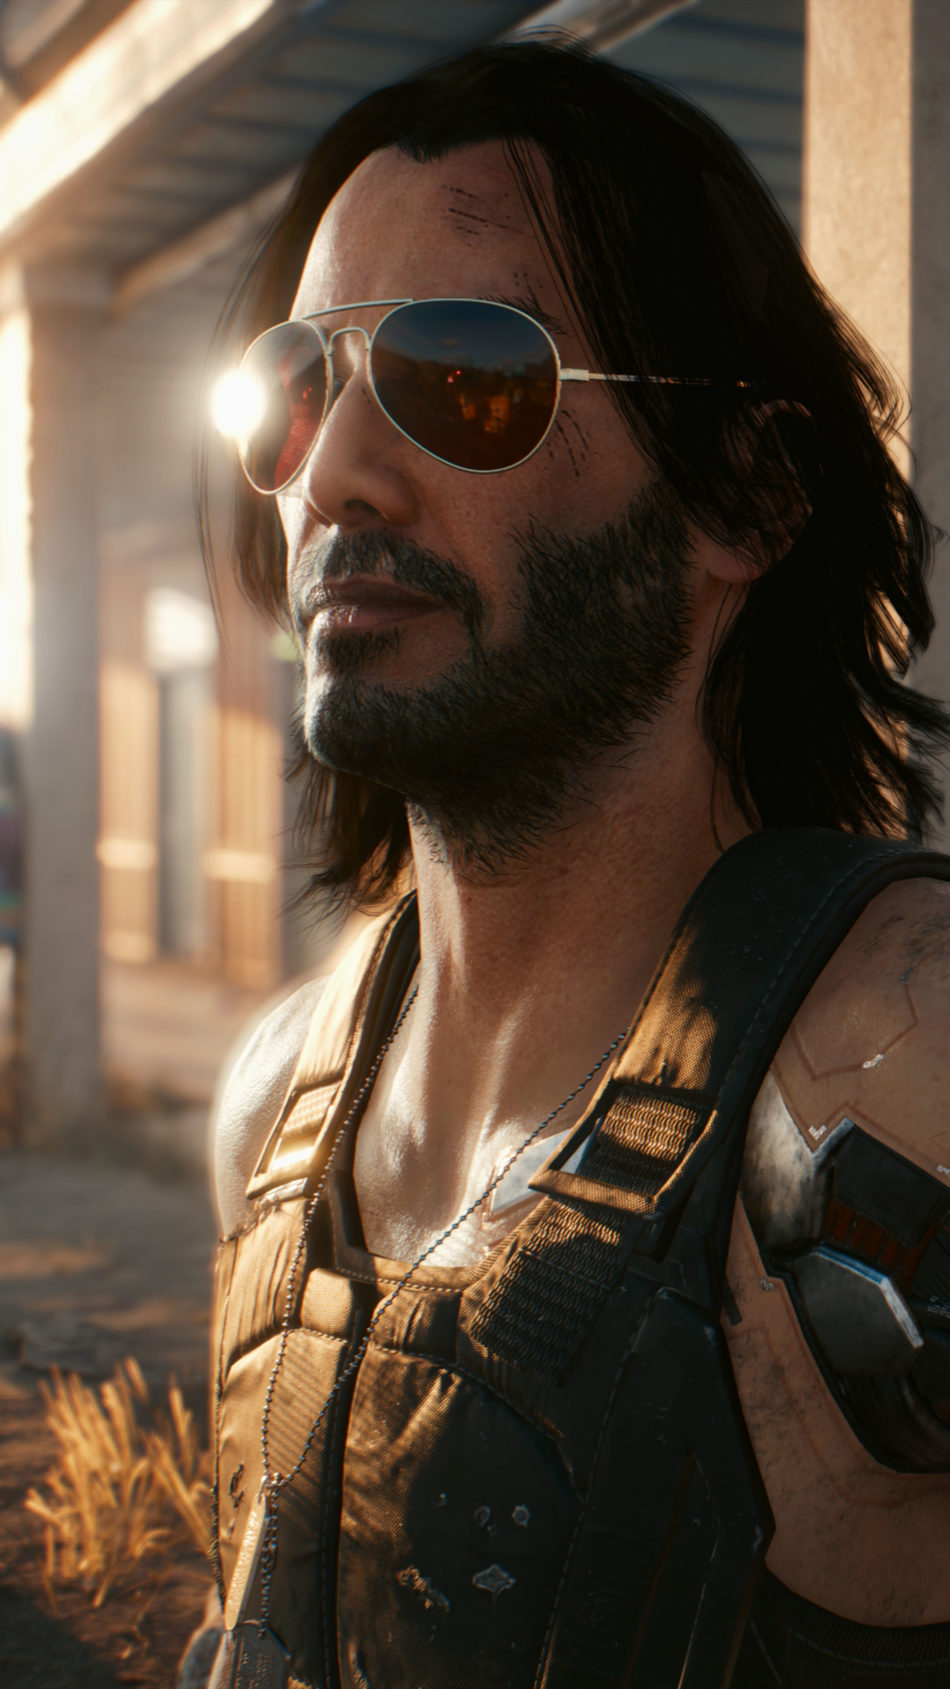 Keanu Reeves Cyberpunk 2077 2020 4K Ultra HD Mobile Wallpaper